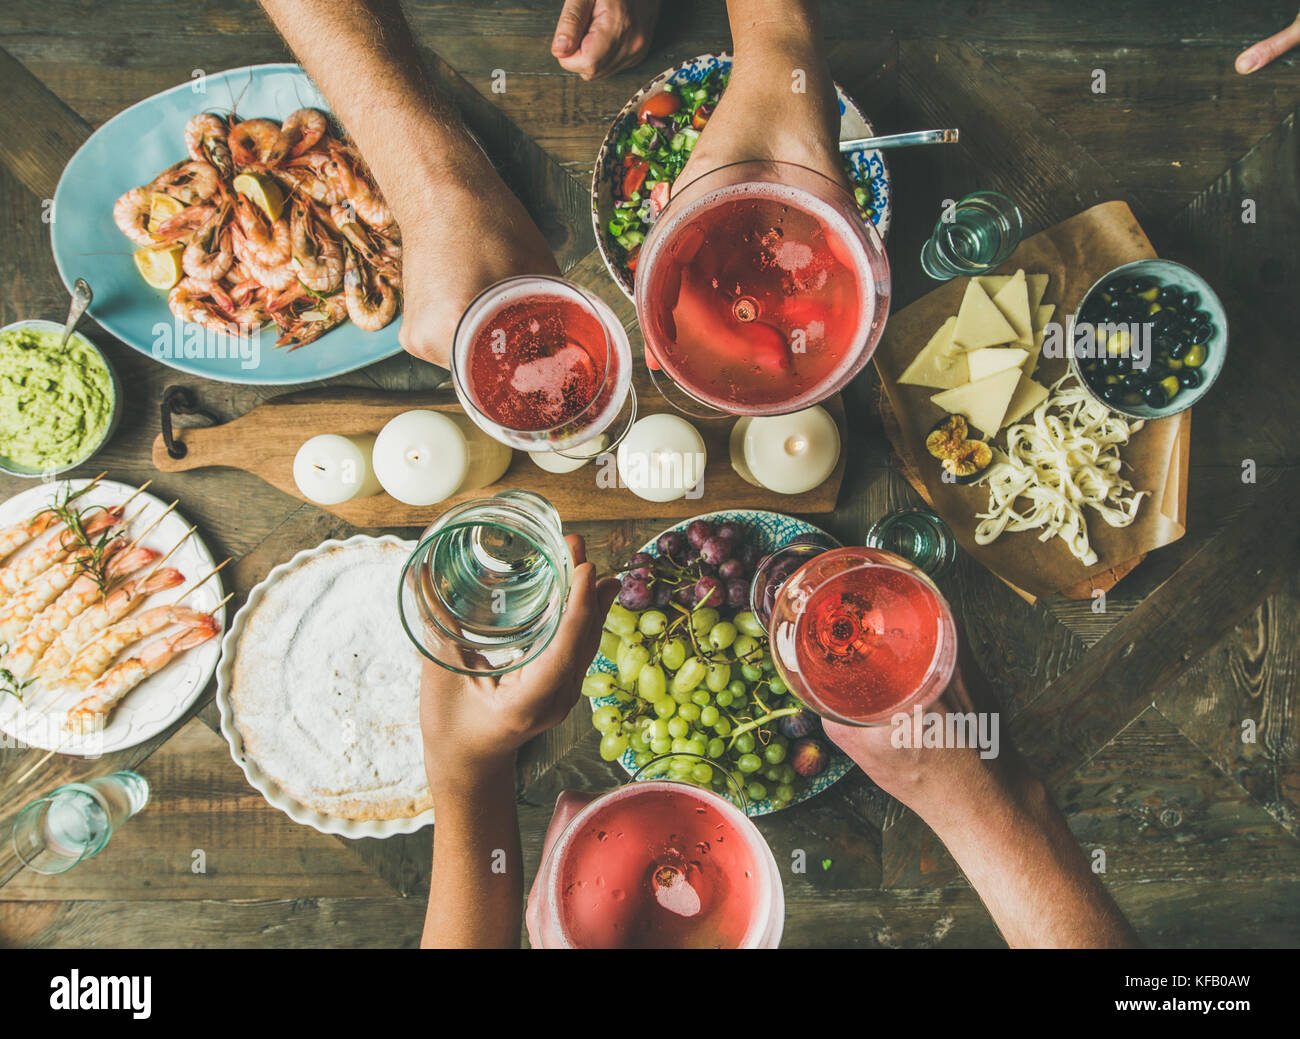 Holiday celebration table setting with food. Flat-lay of friends hands eating and drinking together. Top view of - Stock Image